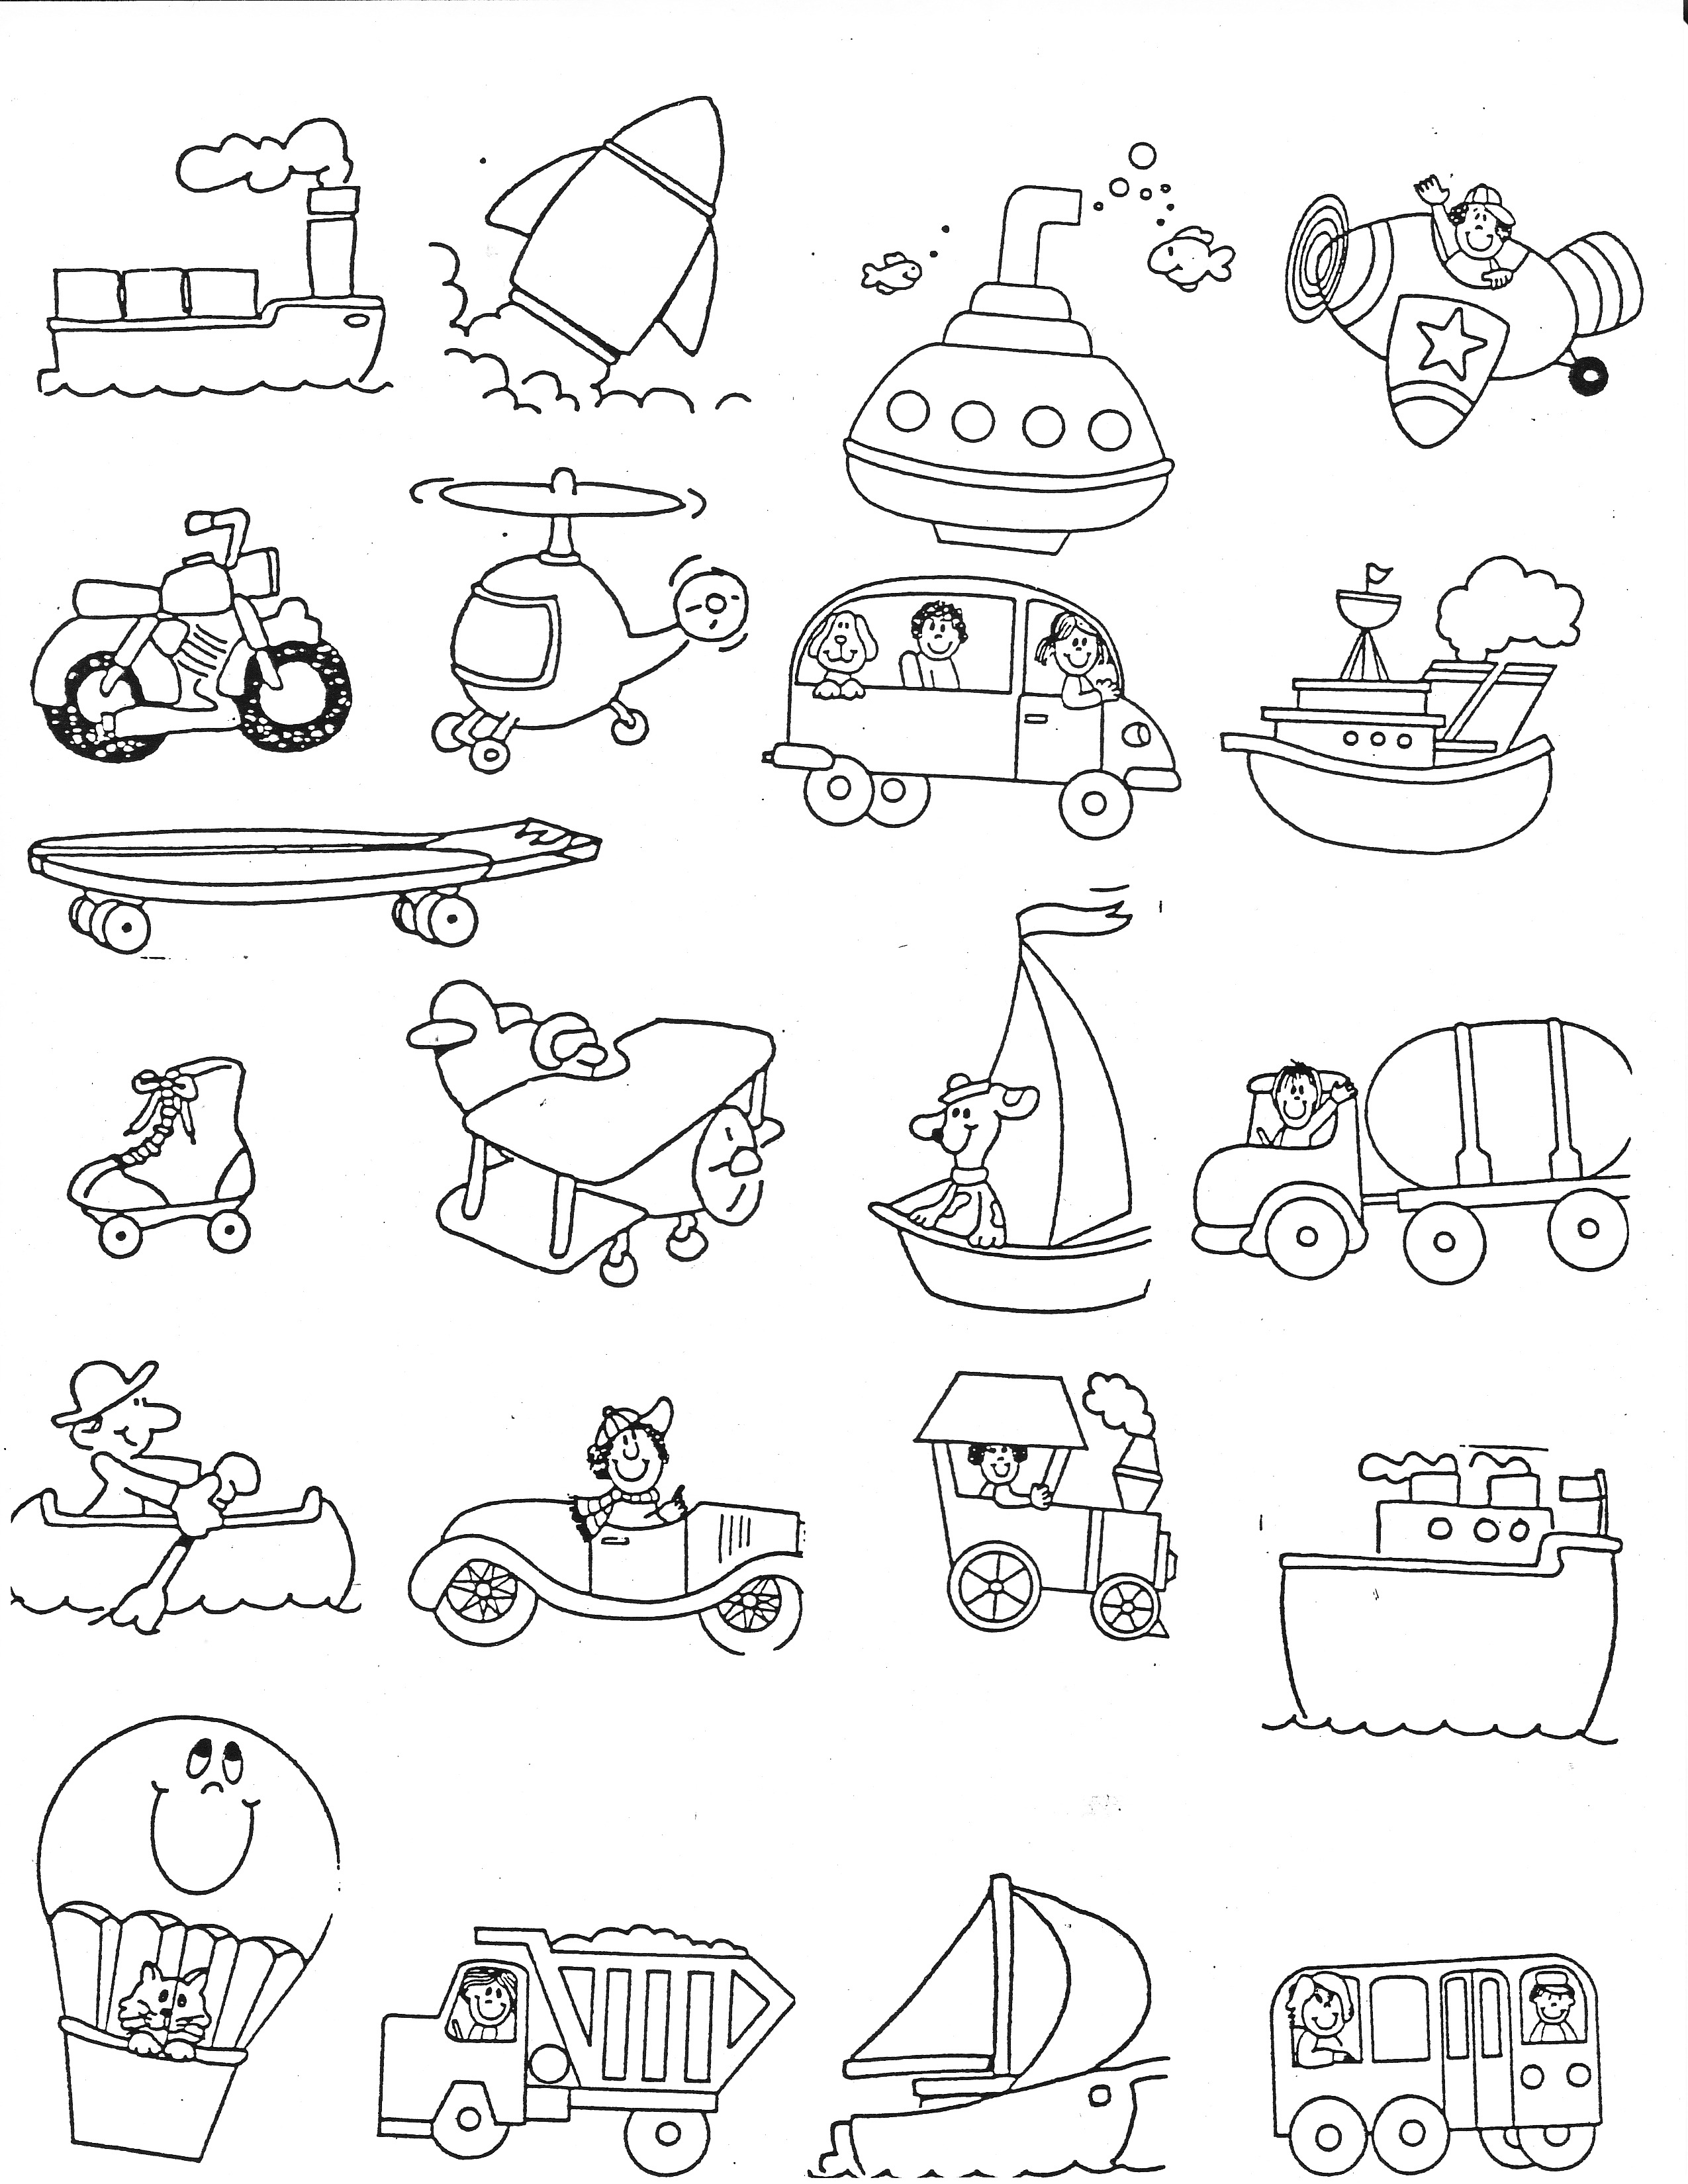 Free pre-school road safety coloring pages